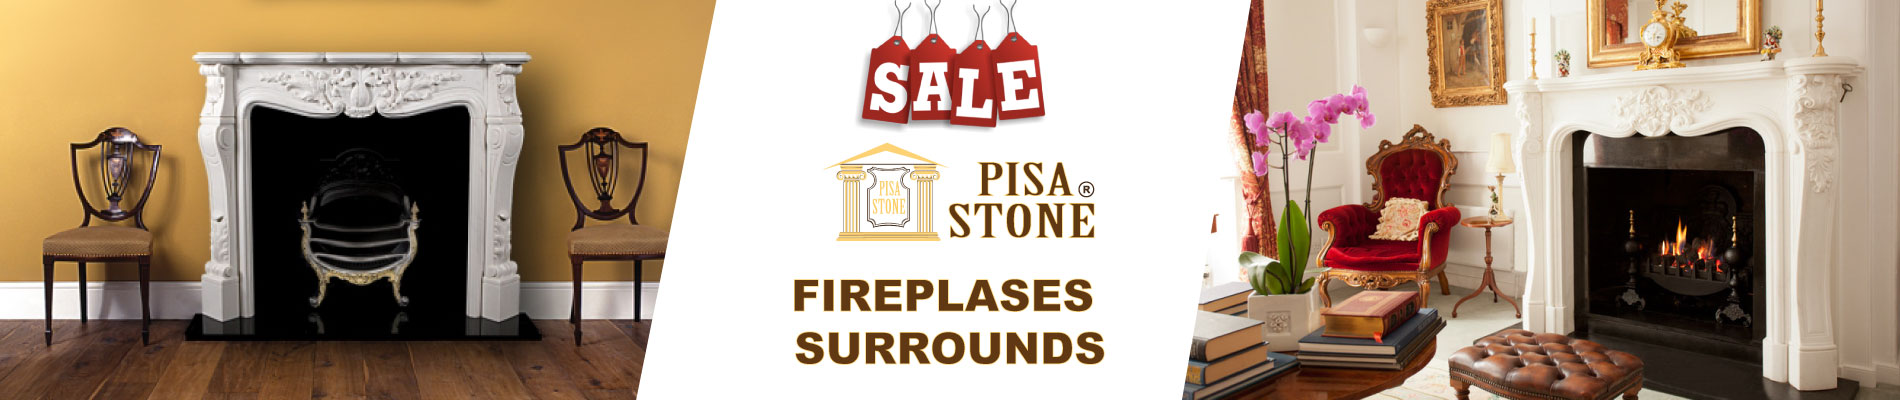 Pisa-Stone®-Fireplaces-Surrounds | | Pisa Stone® Natural Stone Supplier.